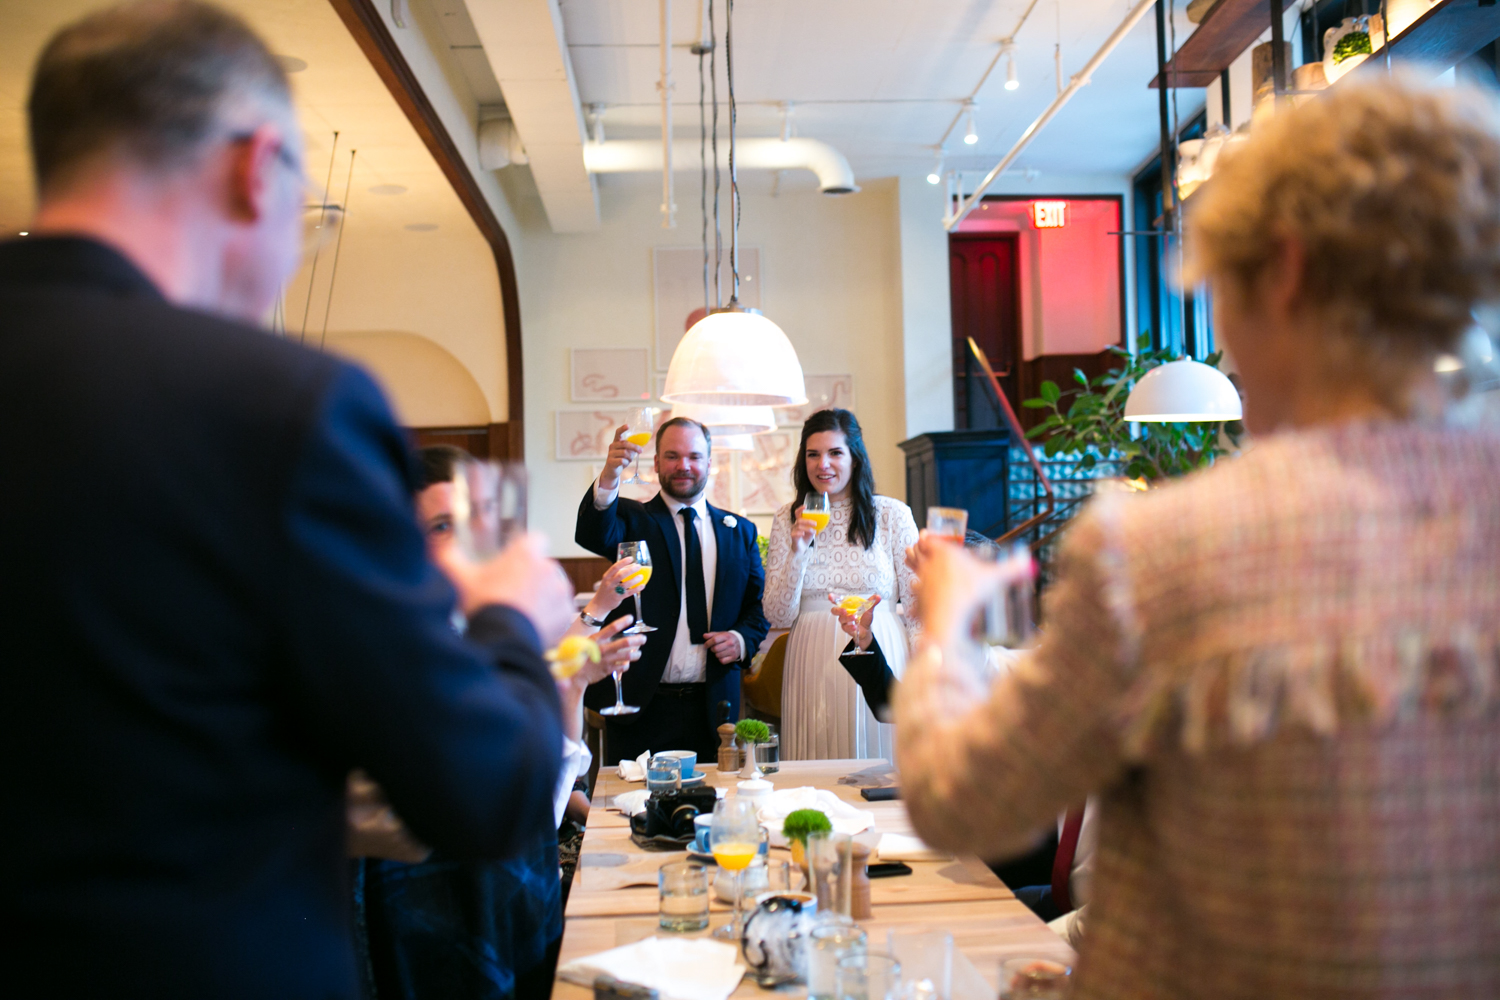 NYC Elopement celebration with friends and family